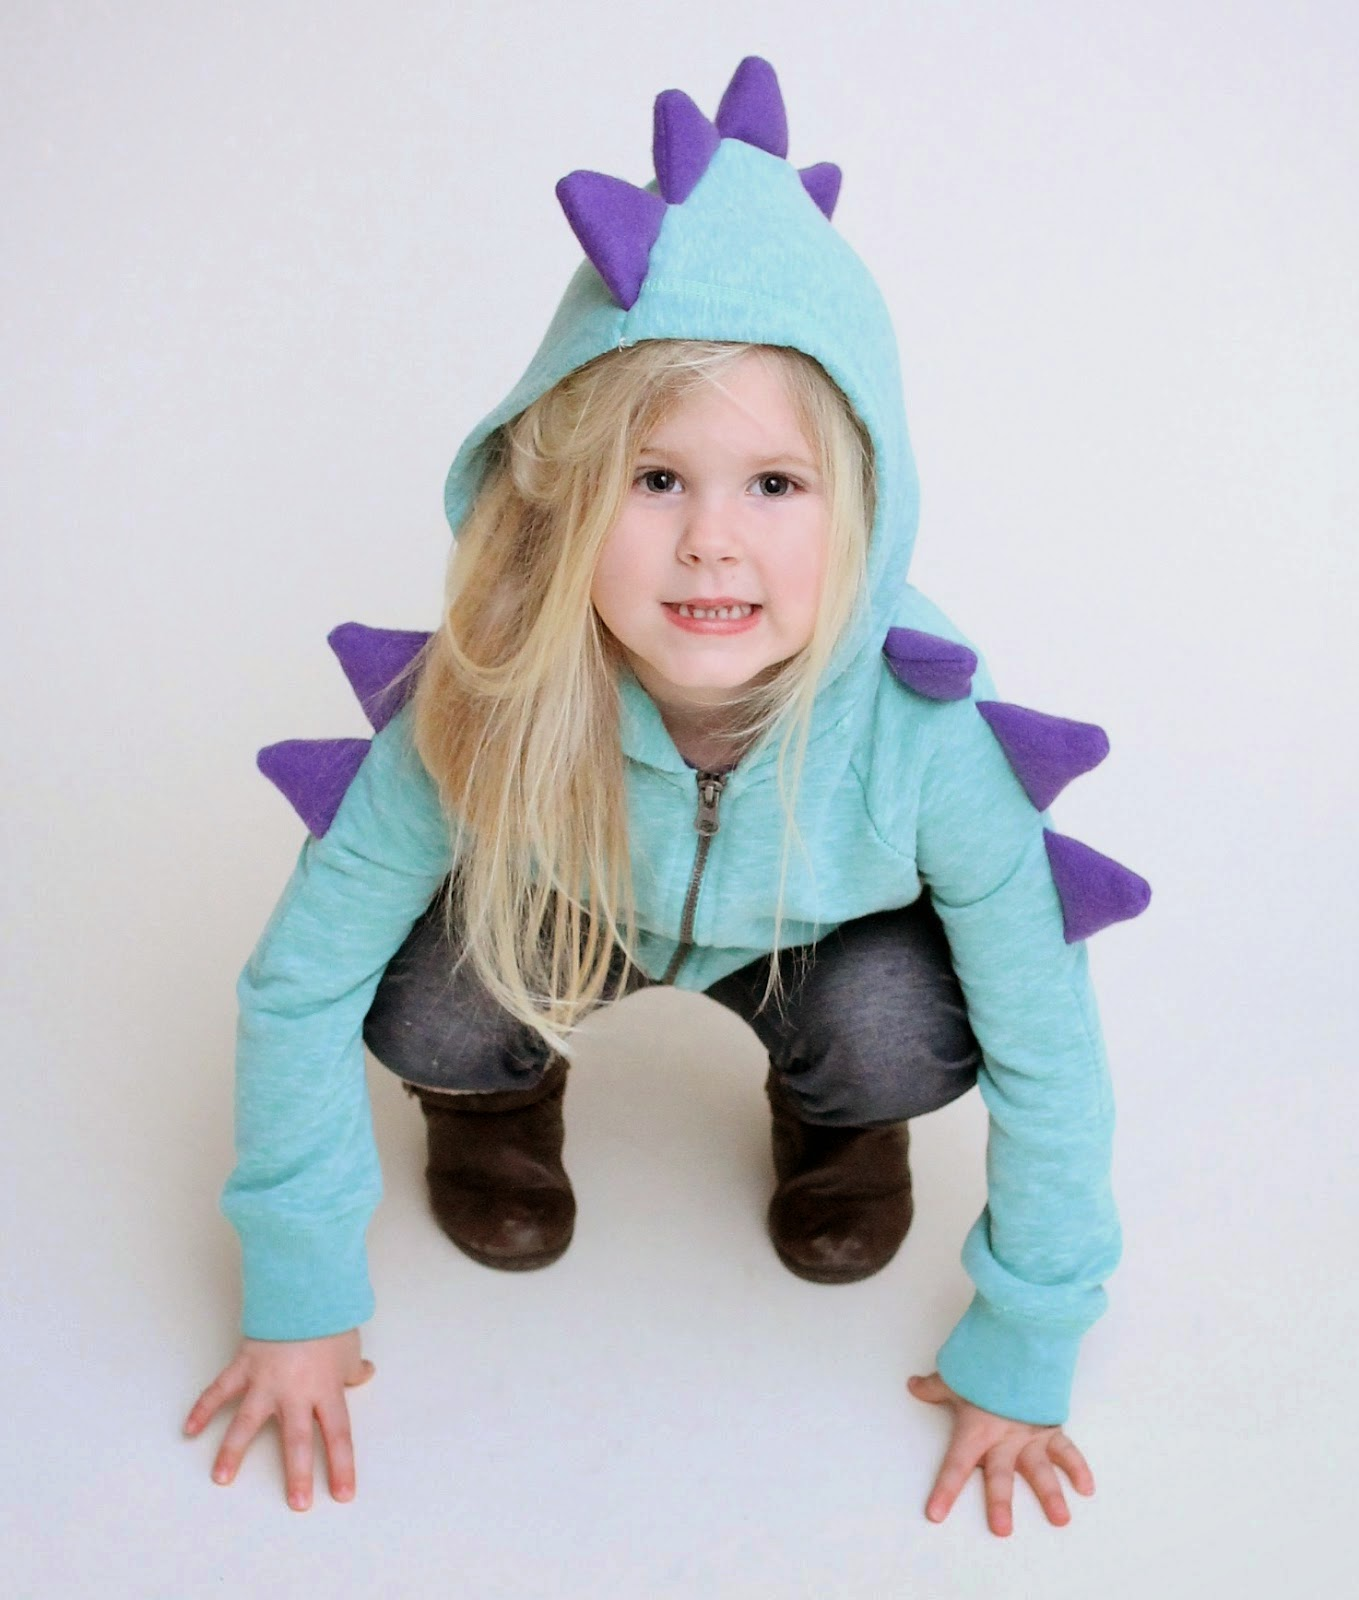 http://www.welcometothemousehouse.com/2014/04/how-to-make-dinosaur-hoodie-calling-all.html